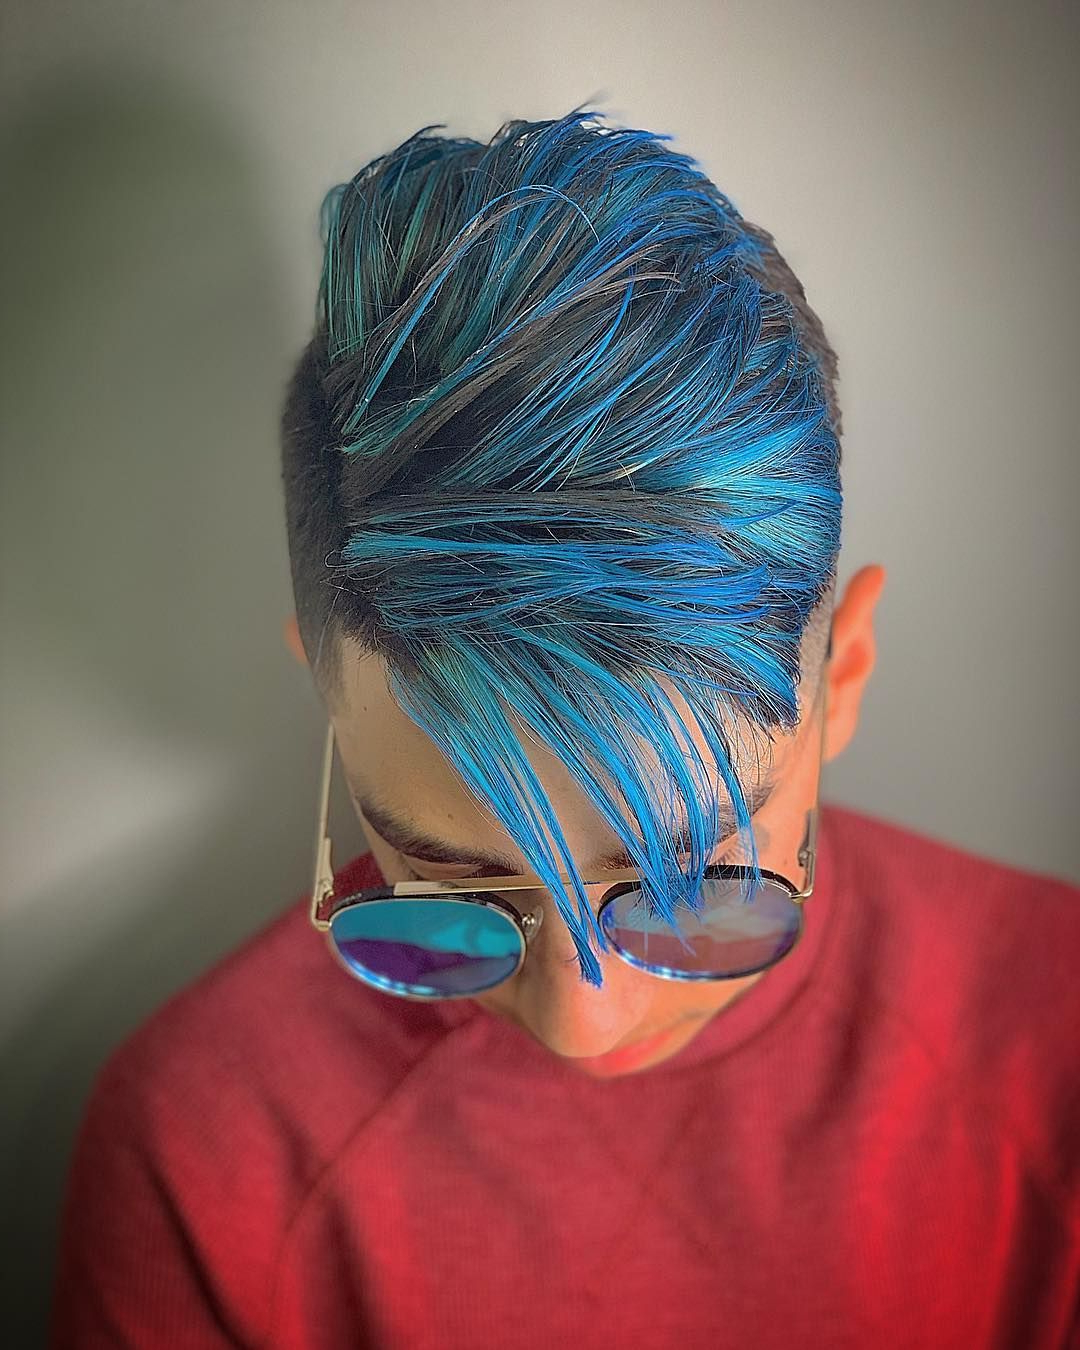 2020 Turquoise Side Parted Mohawk Hairstyles For Men's Hair, Haircuts, Fade Haircuts, Short, Medium, Long (View 2 of 20)